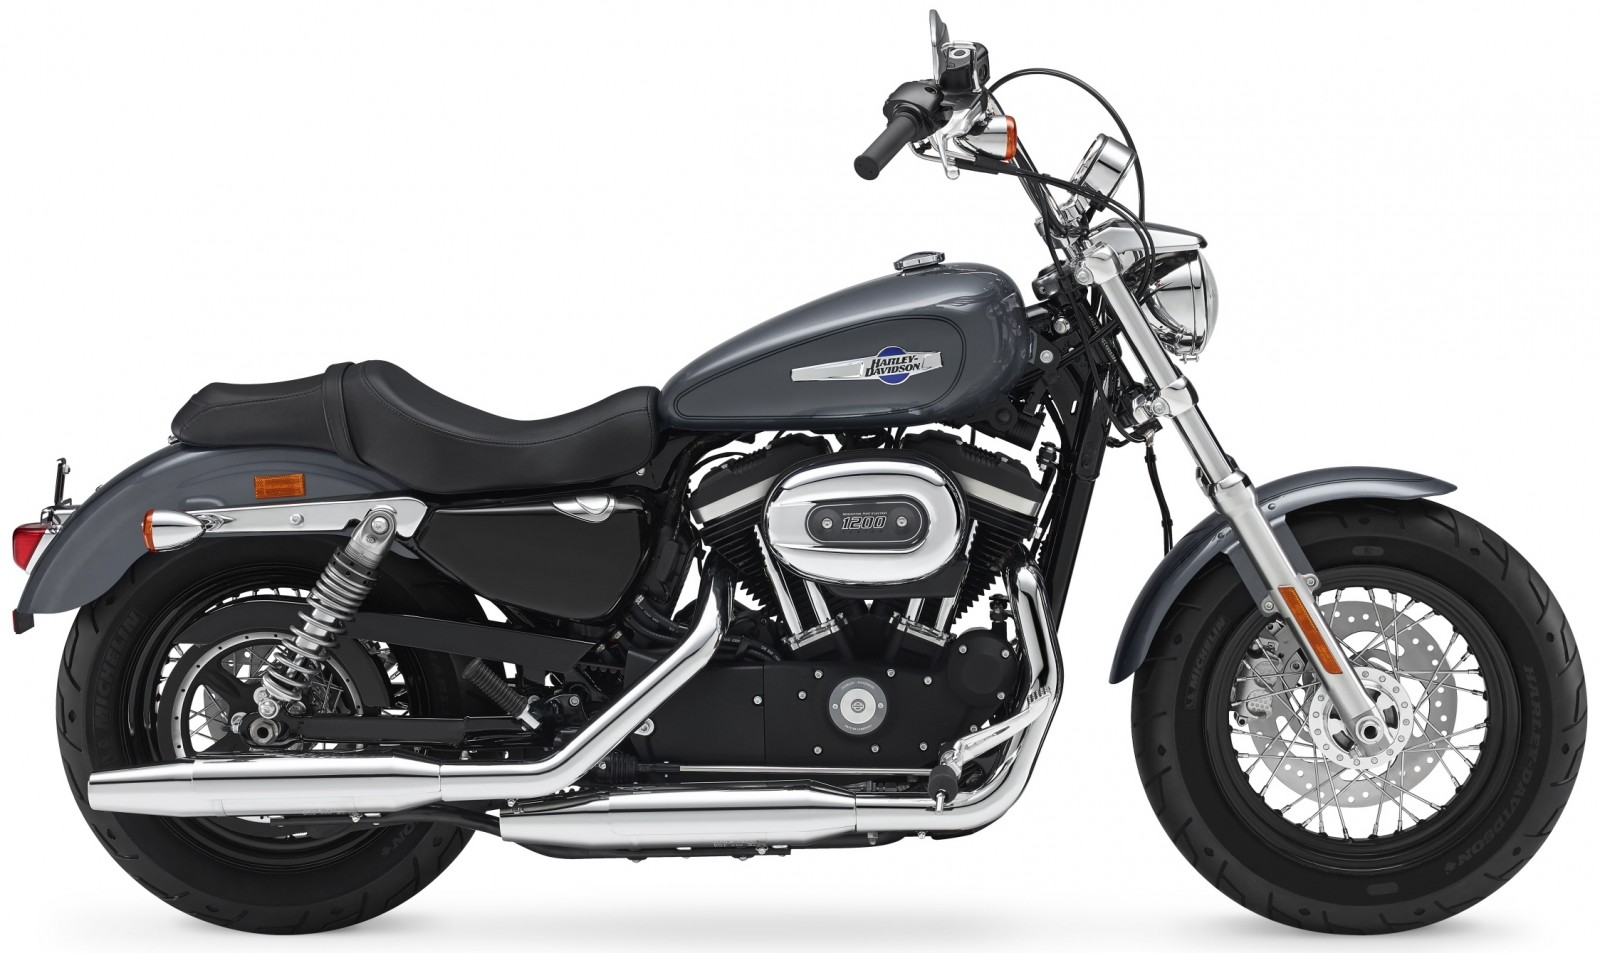 sell my motorcycle with webuyanybike - sell motorbike - we buy any bike - sell my motorbike - harley sportster